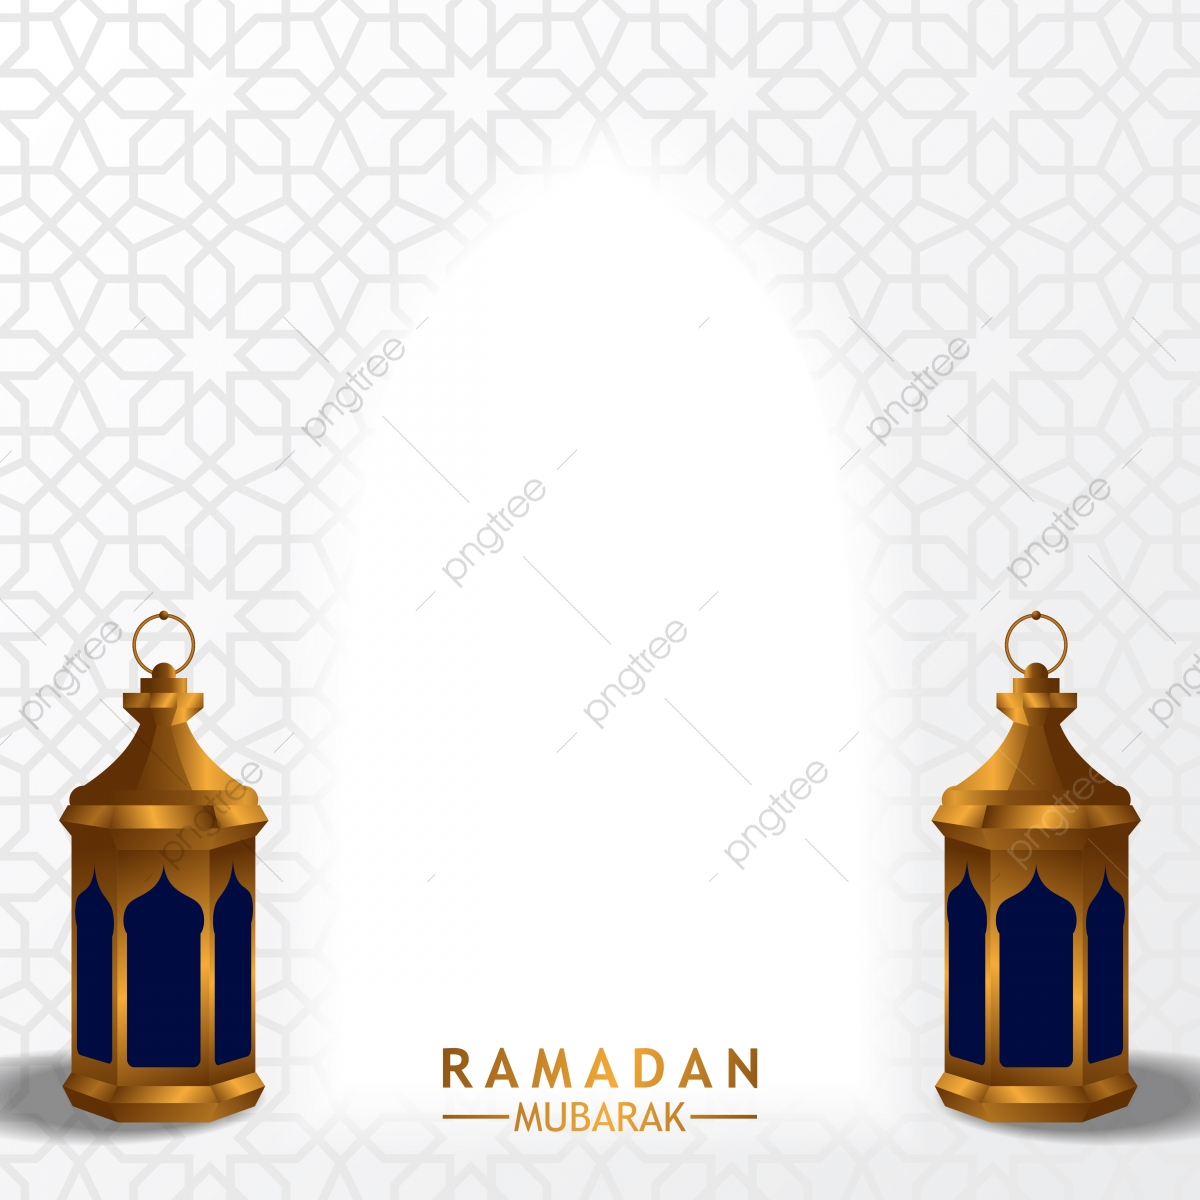 lamp png images vector and psd files free download on pngtree https pngtree com freepng realistic 3d golden fanous arabic lantern lamp with white background for islamic event 4184938 html